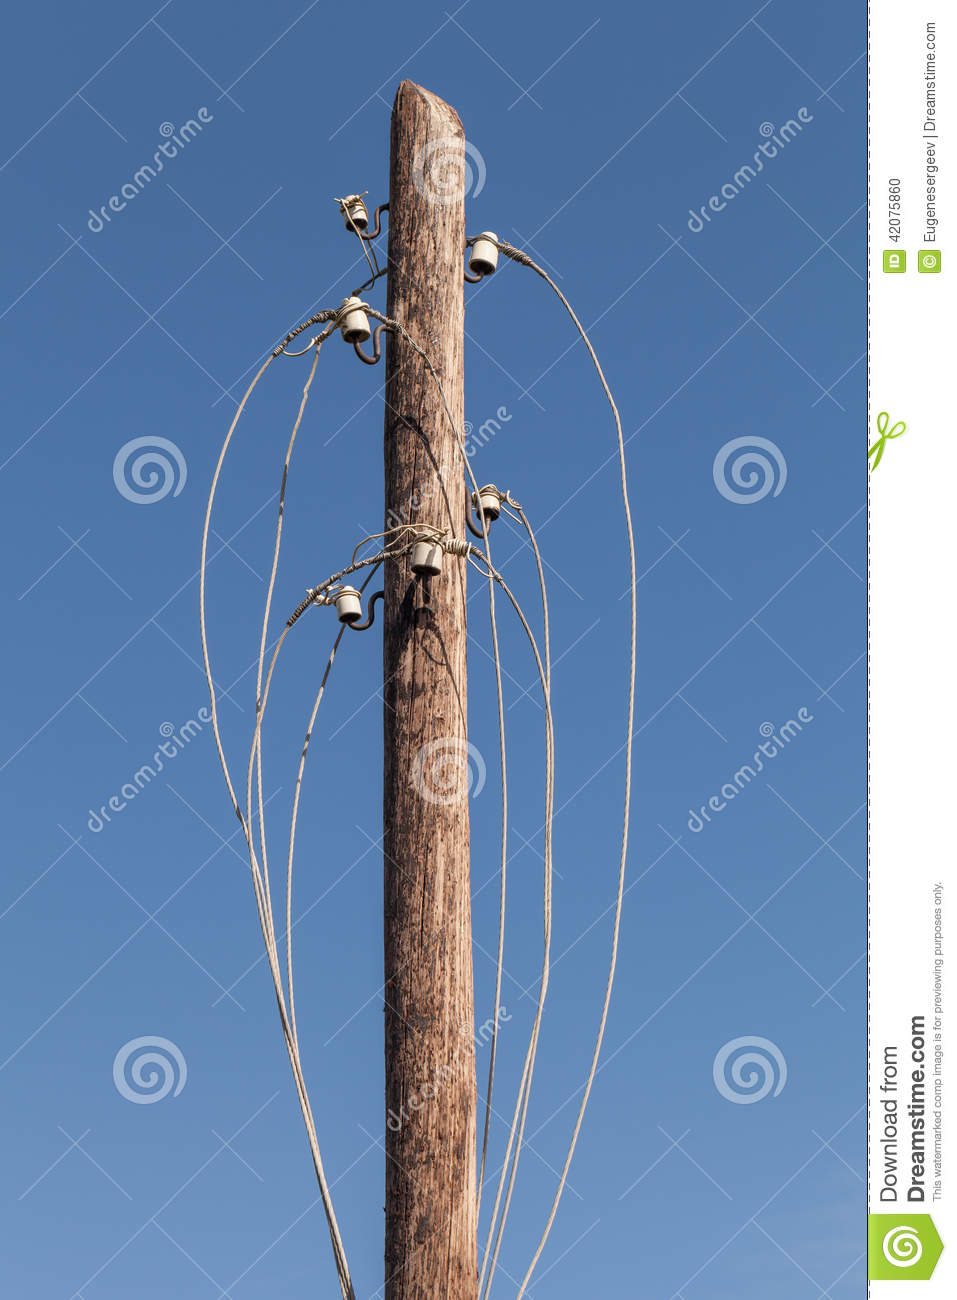 Disconnected Electric Wires On Wooden Pylon Stock Photo - Image of ...